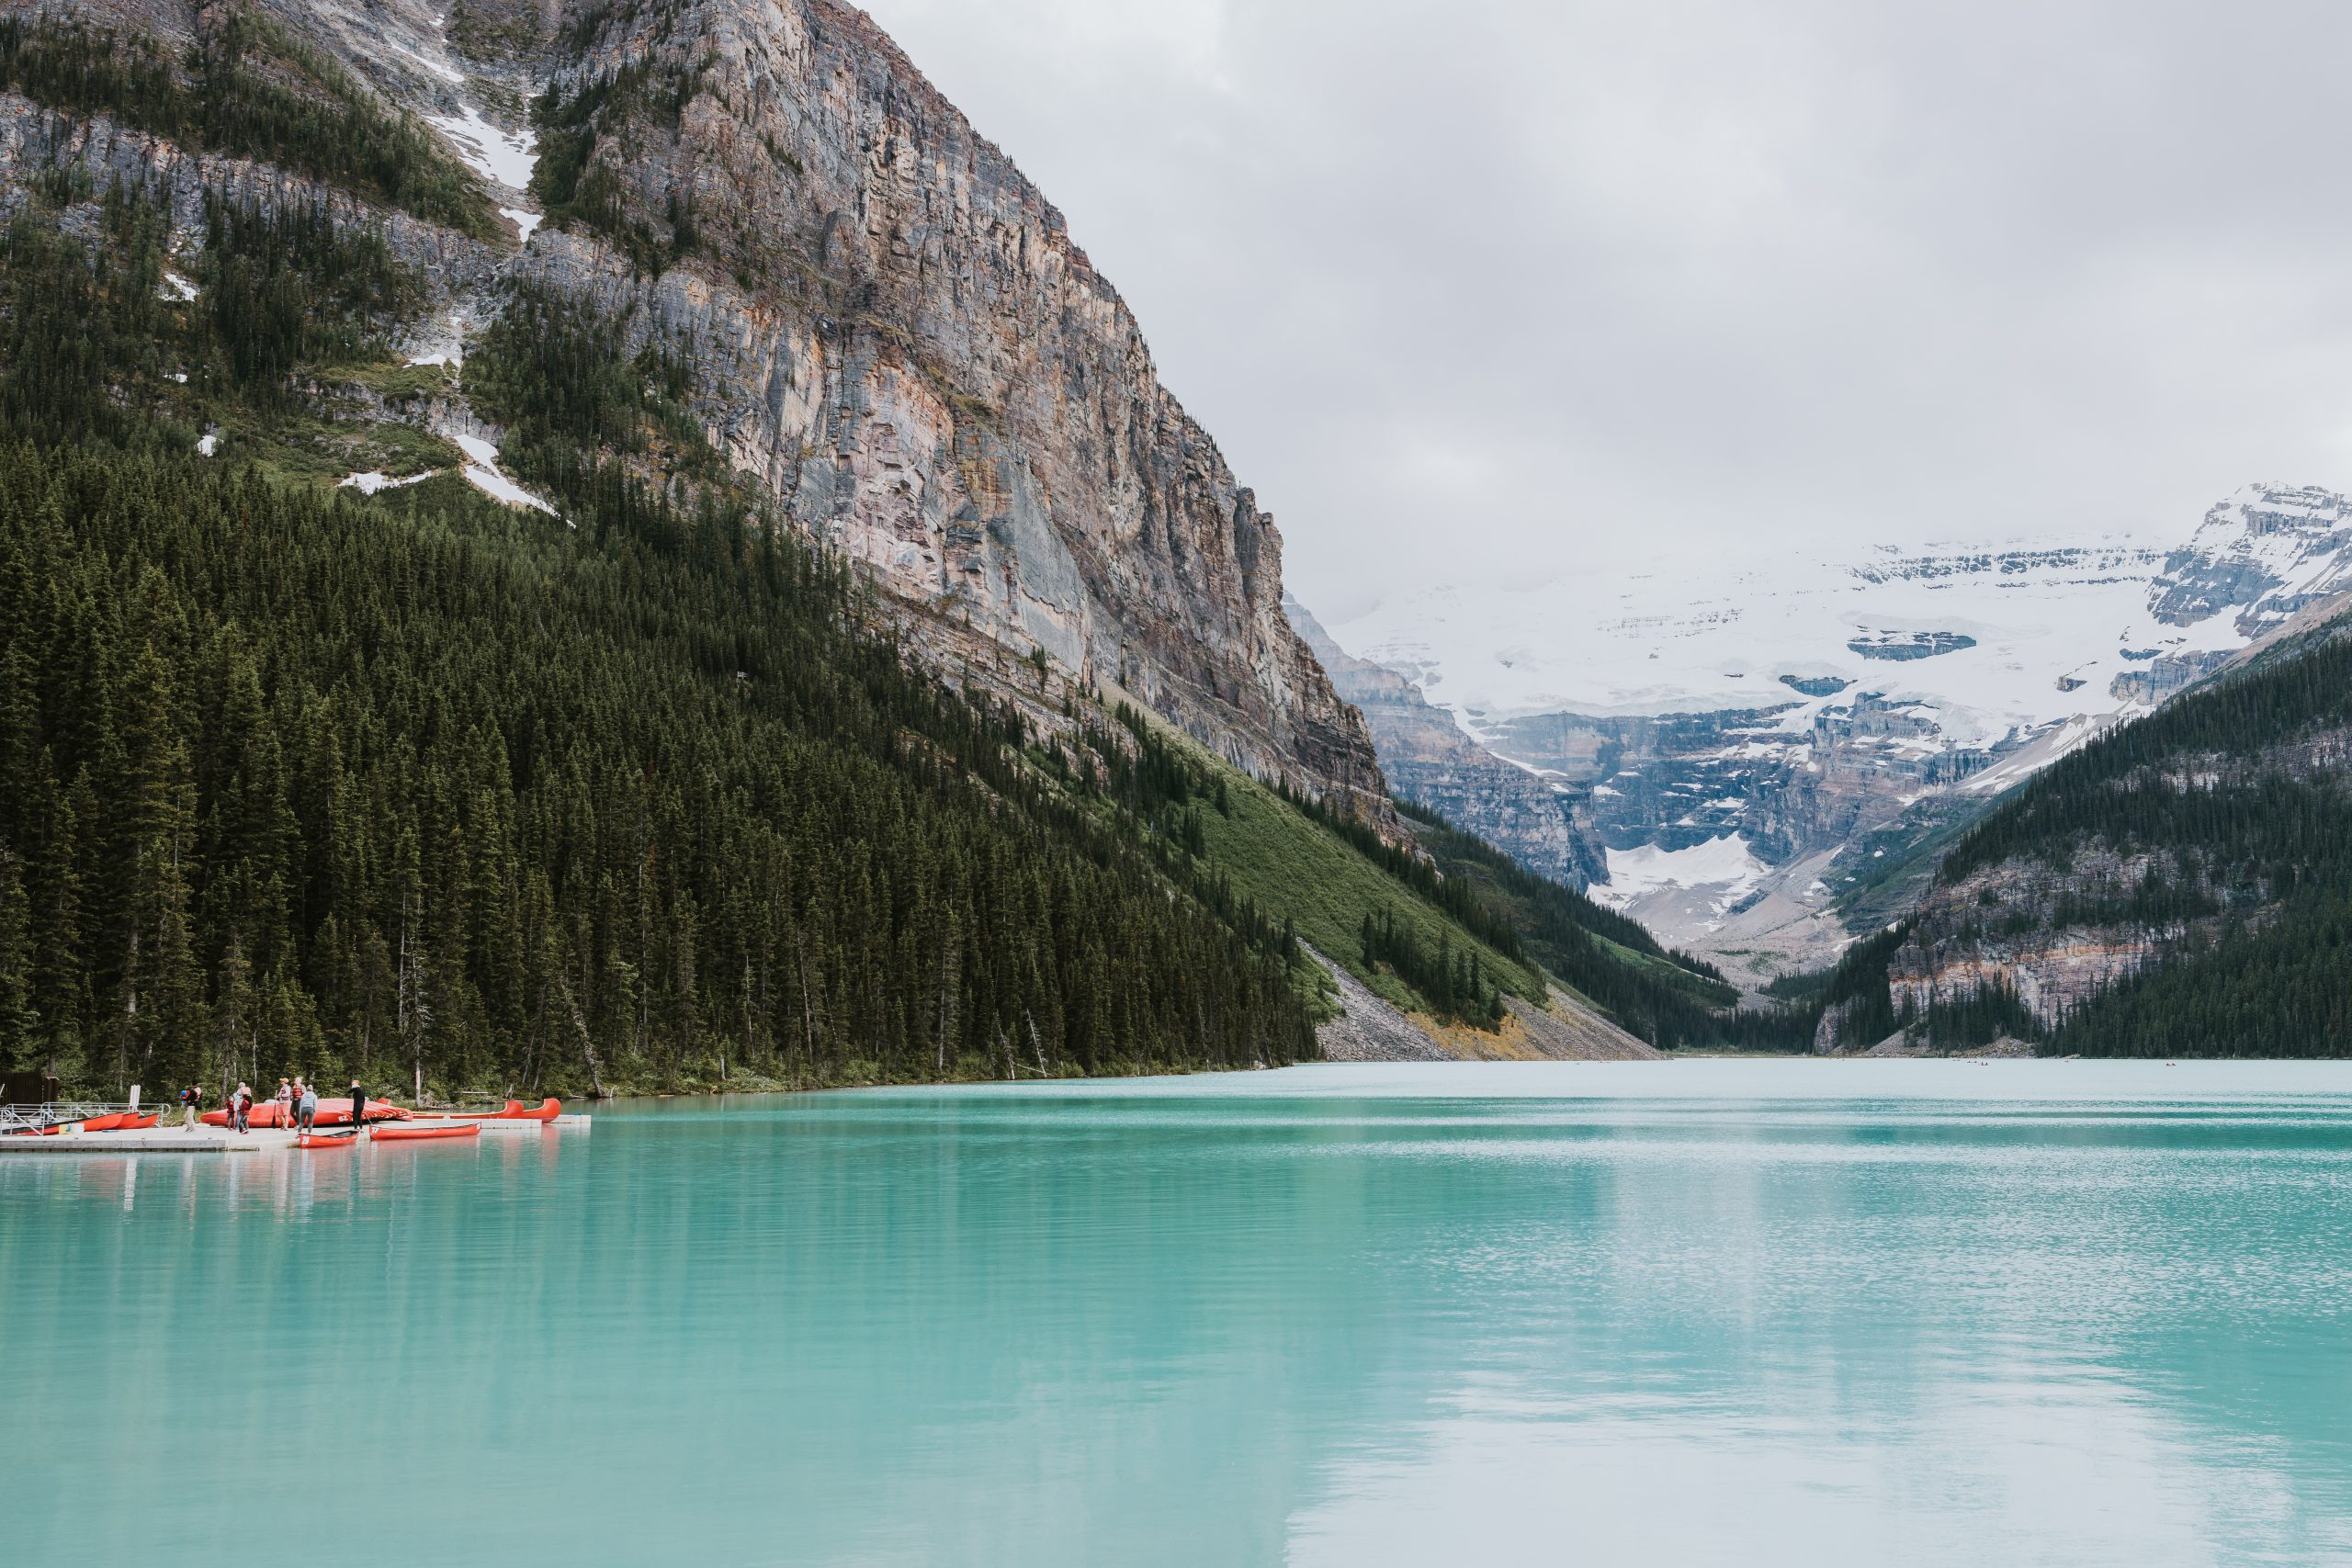 Travelling to Banff! The best places to eat with kids in banff and what to do in Banff in summer. How to travel to Banff on a budget!